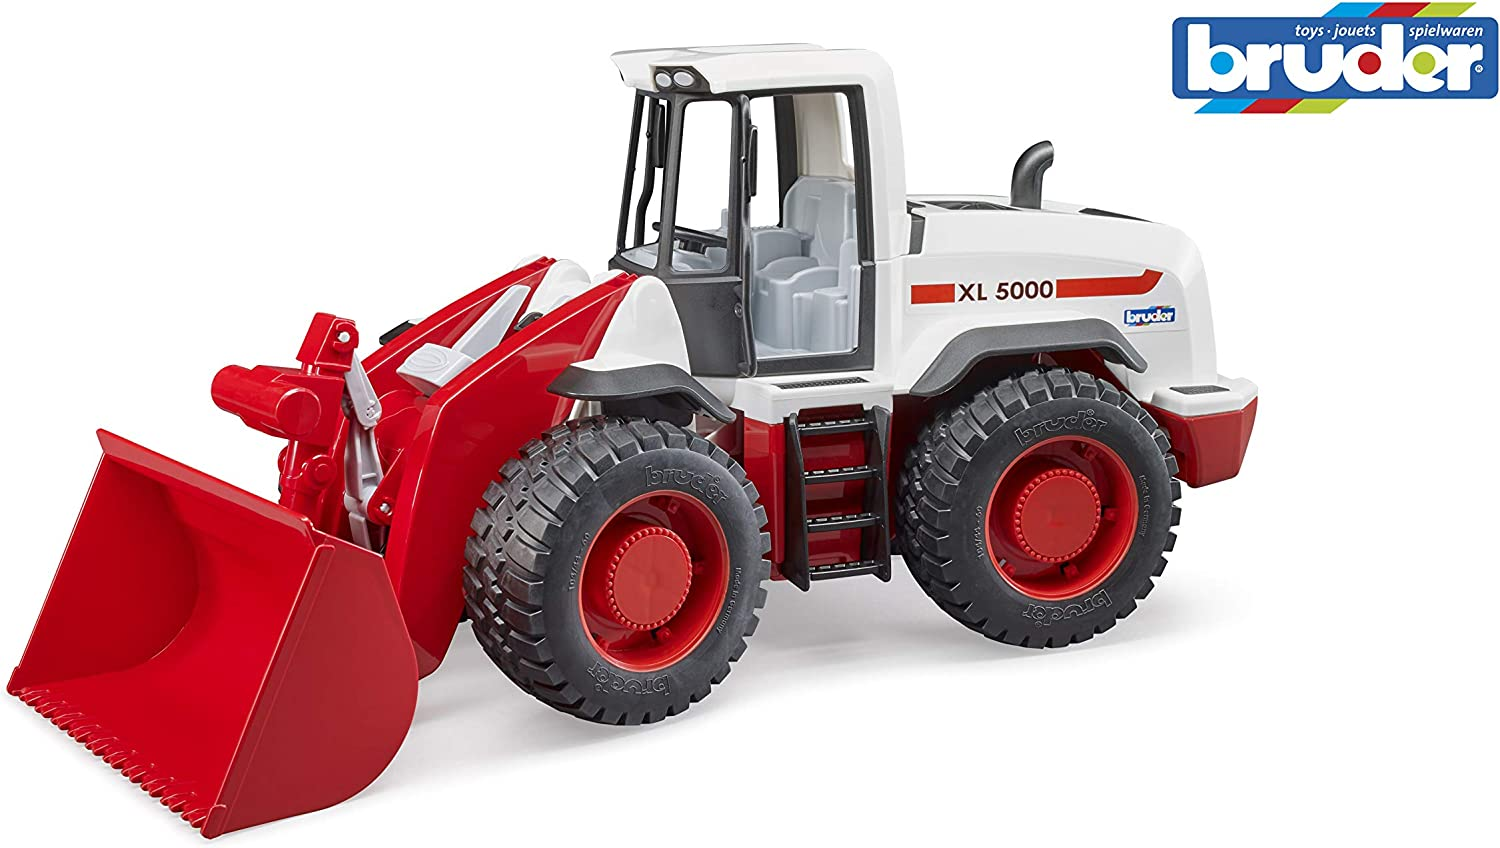 Bruder 03410 Front End Loader for Sandbox, Farm and Construction Pretend Play